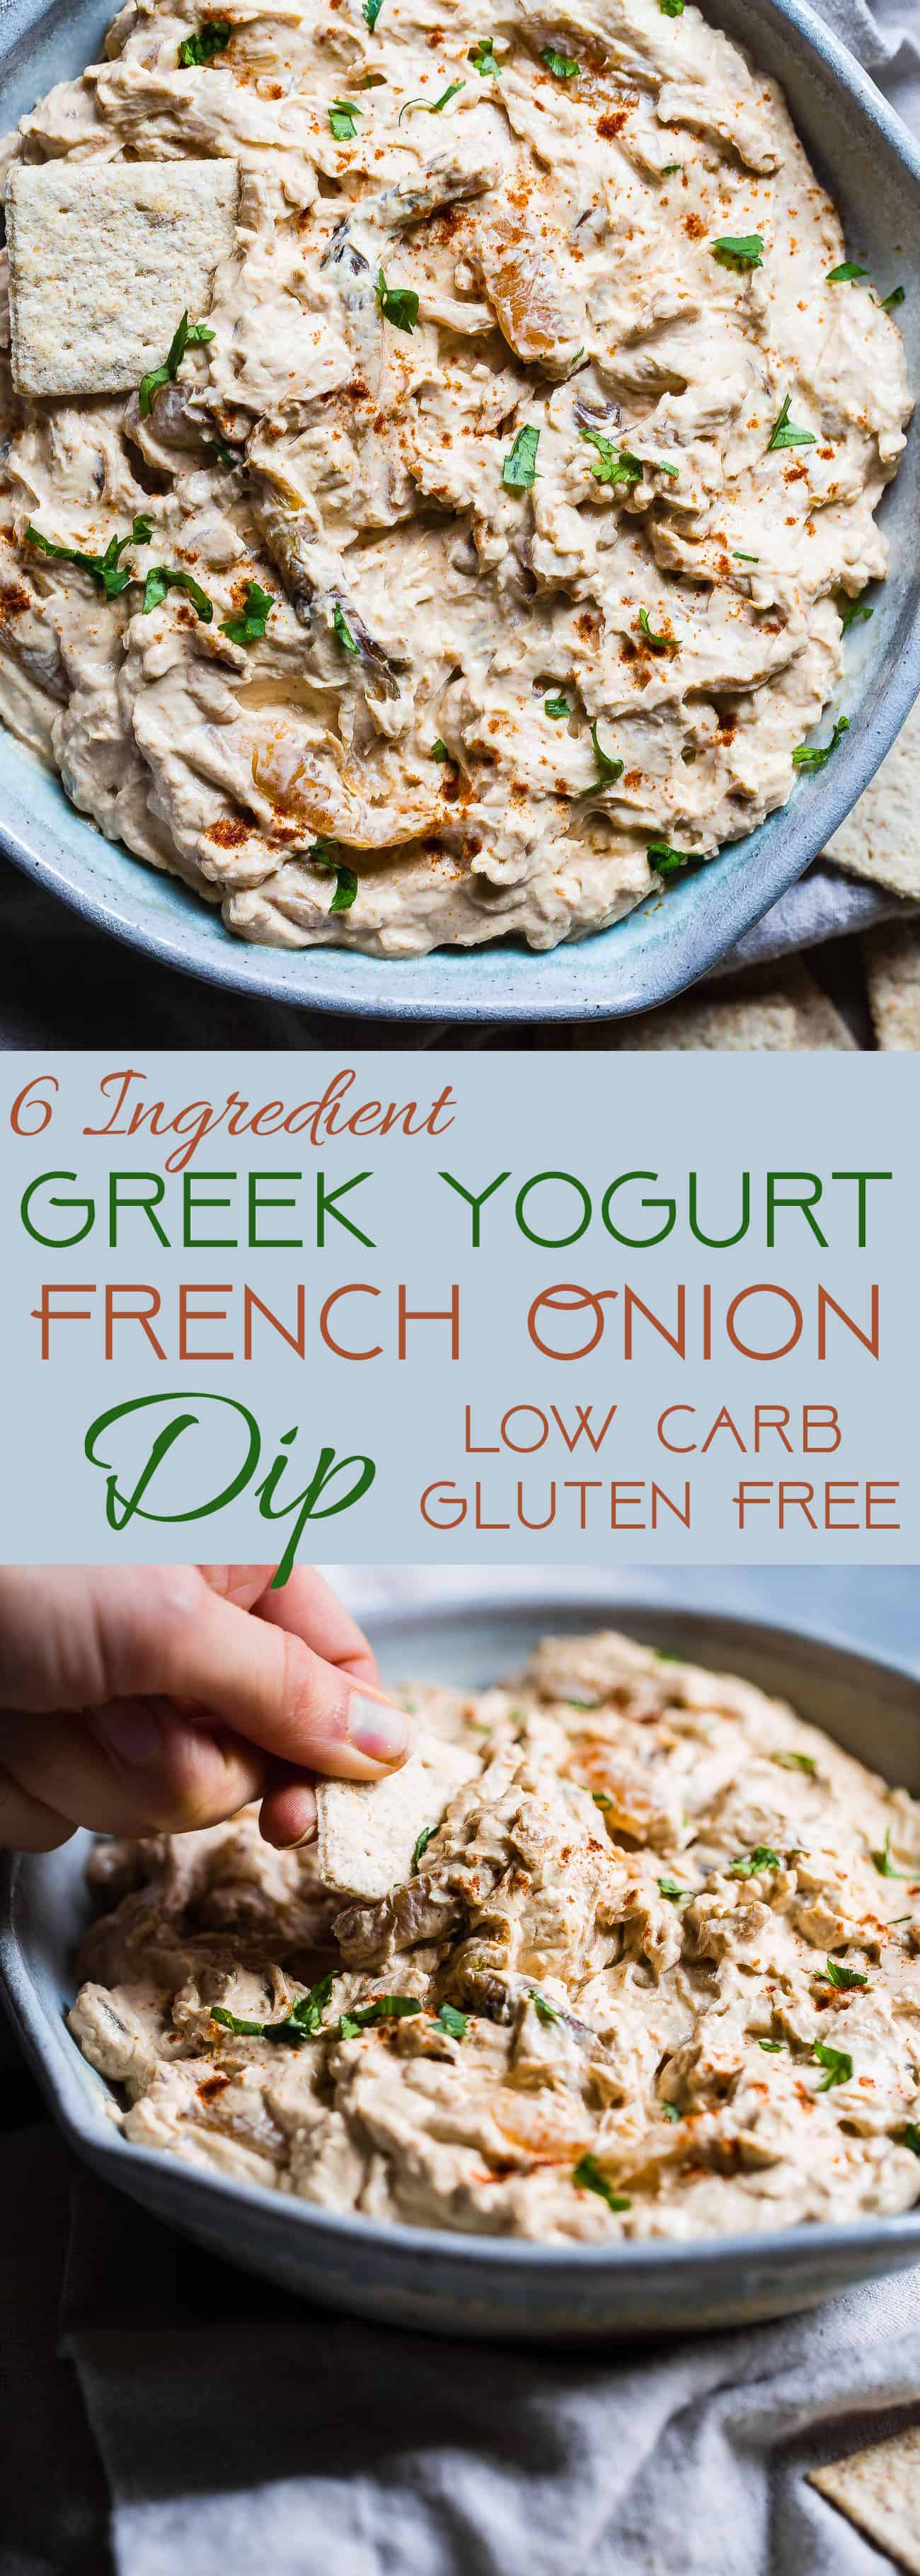 Easy Greek Yogurt French Onion Dip - This quick and easy French onion dip is a healthy, low carb, gluten free and protein packed appetizer that is perfect for parties! Only 110 calories and so creamy! | Foodfaithfitness.com | @FoodFaithFit | Homemade French Onion Dip. Caramelized French Onion Dip. New Years Eve Appetizers. Greek Yogurt Dip. Healthy Dip Recipes